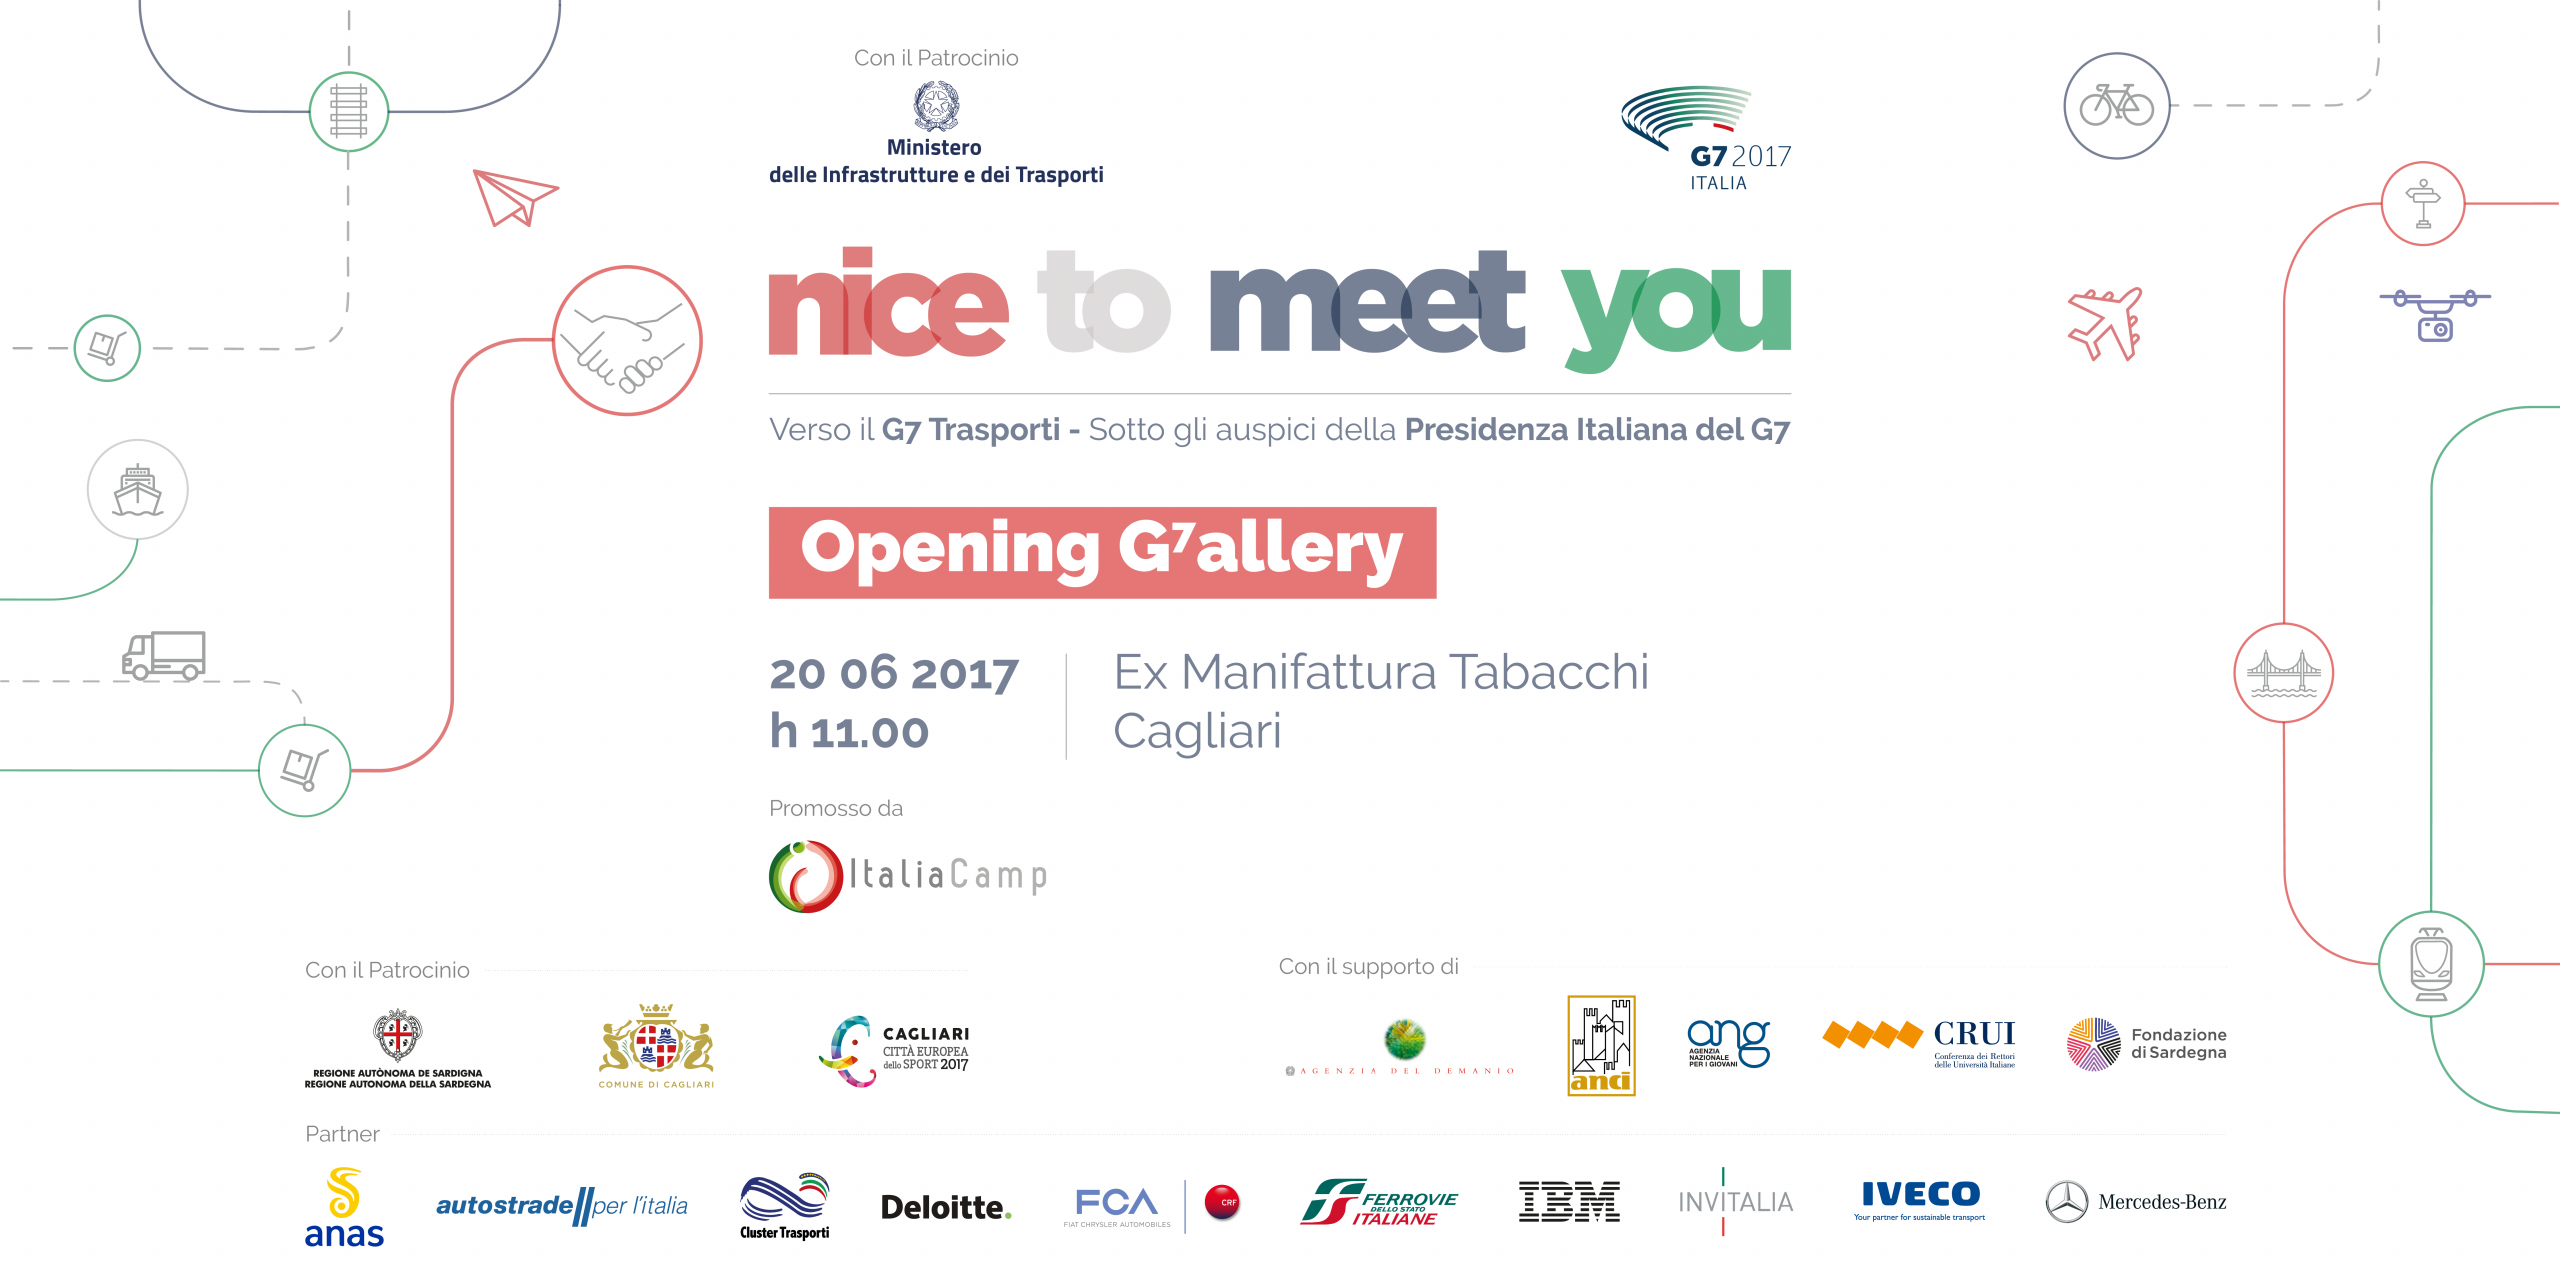 Nice To Meet You G7! Opening G7allery